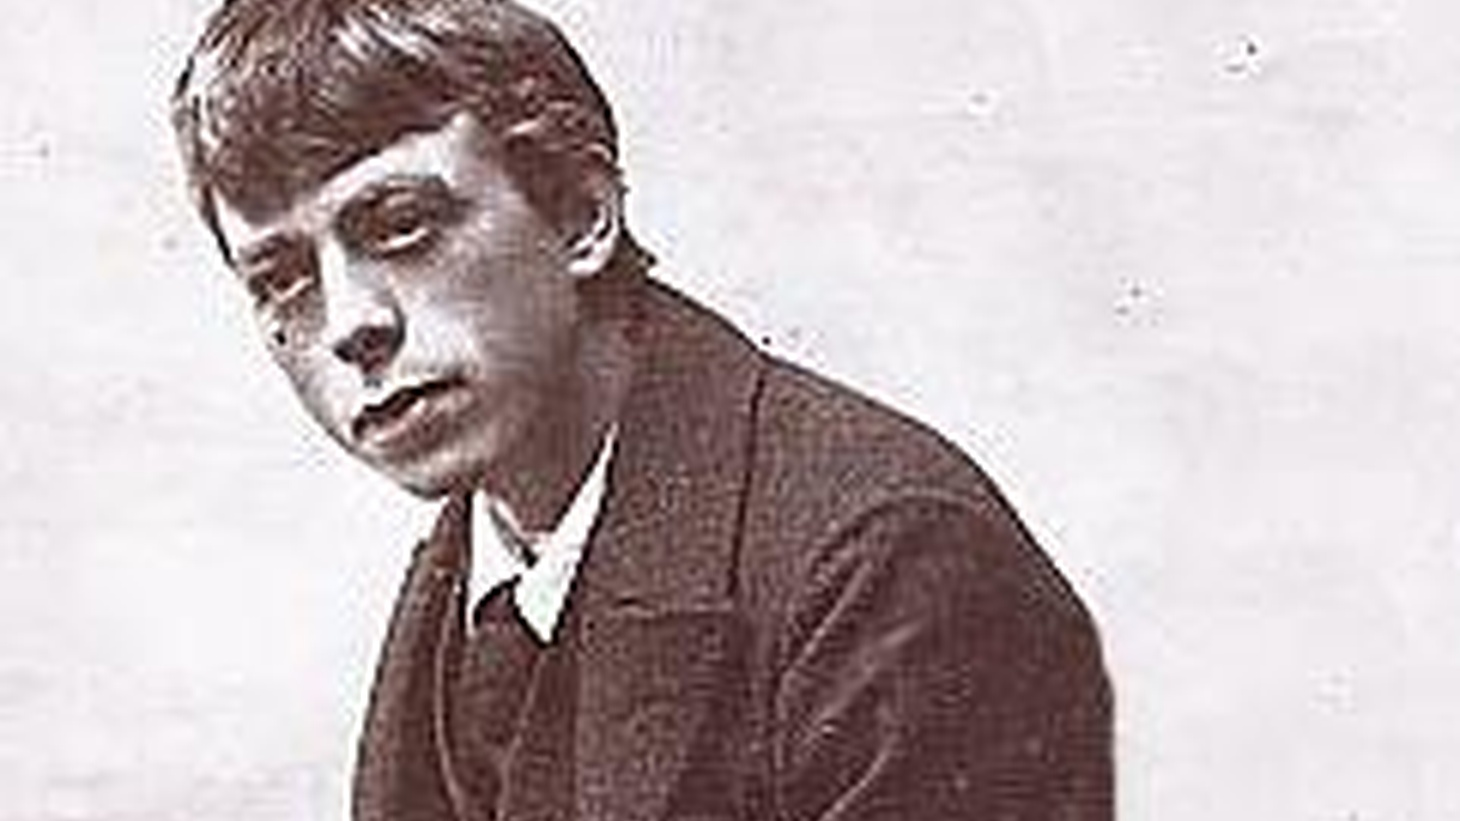 A tribute to the great (and virtually unknown) Swiss writer Robert Walser, who